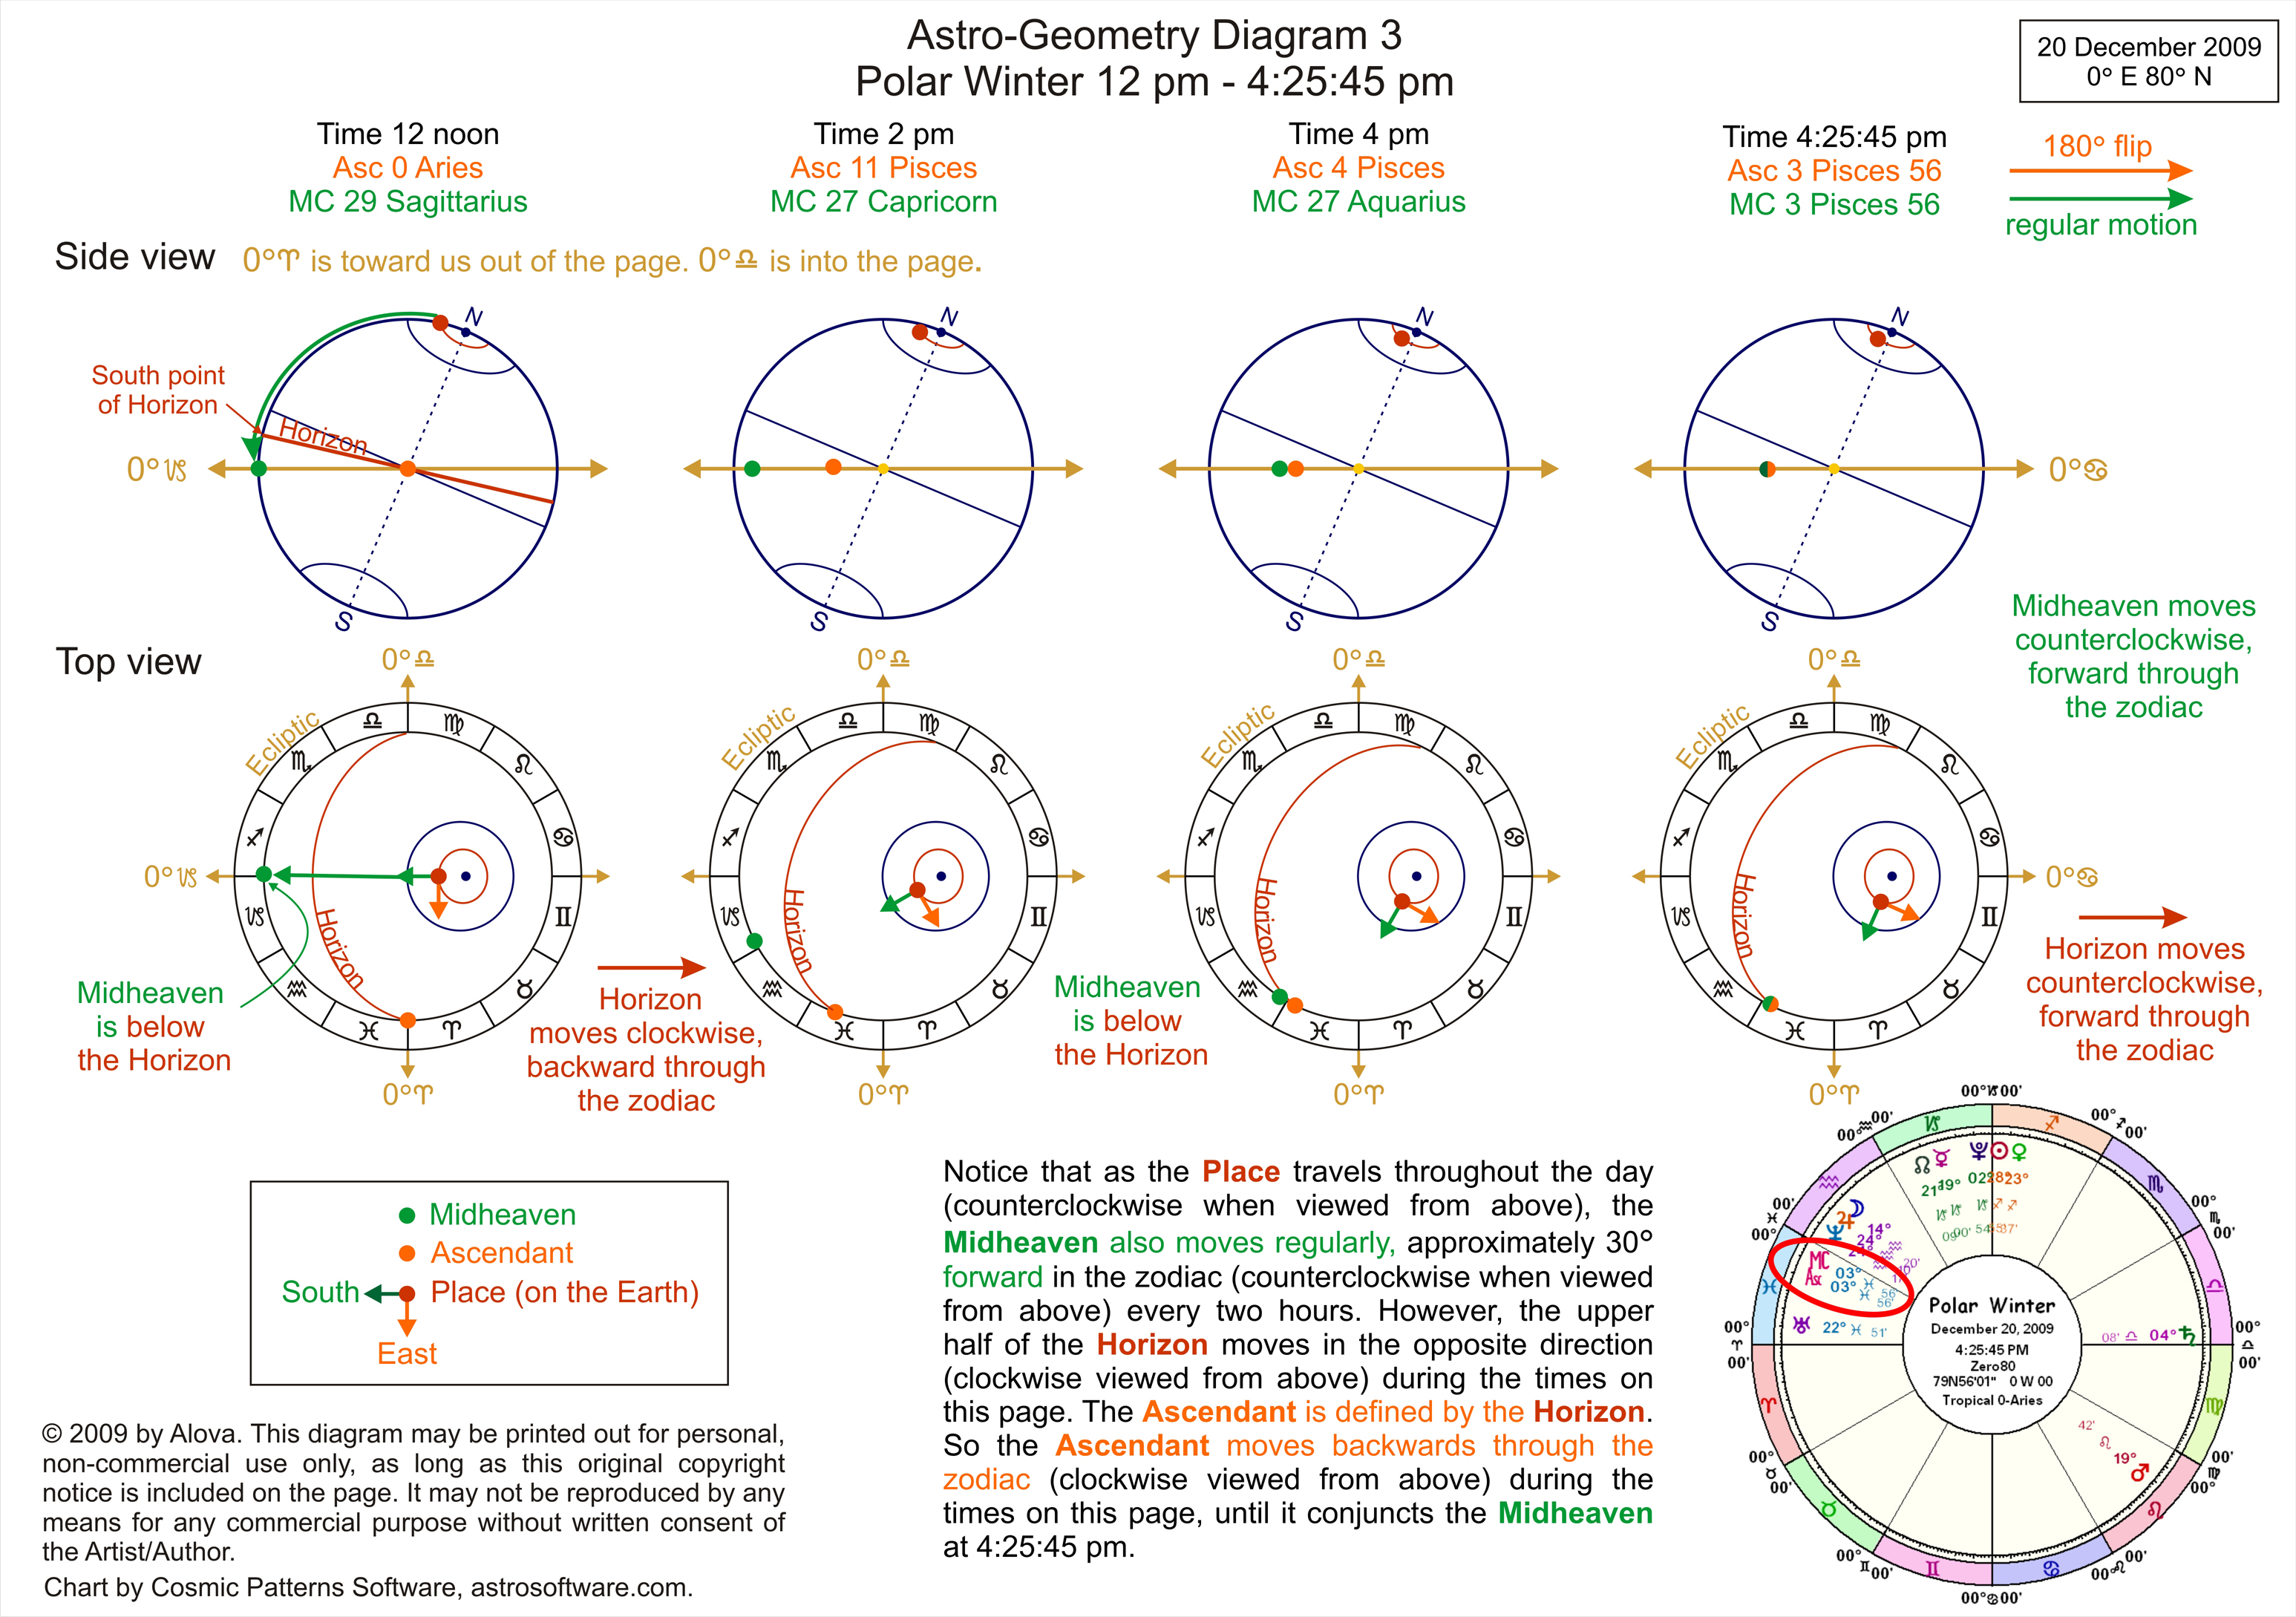 Astro geometry astrology article by alova click for a printable version of diagram 3 then save nvjuhfo Image collections